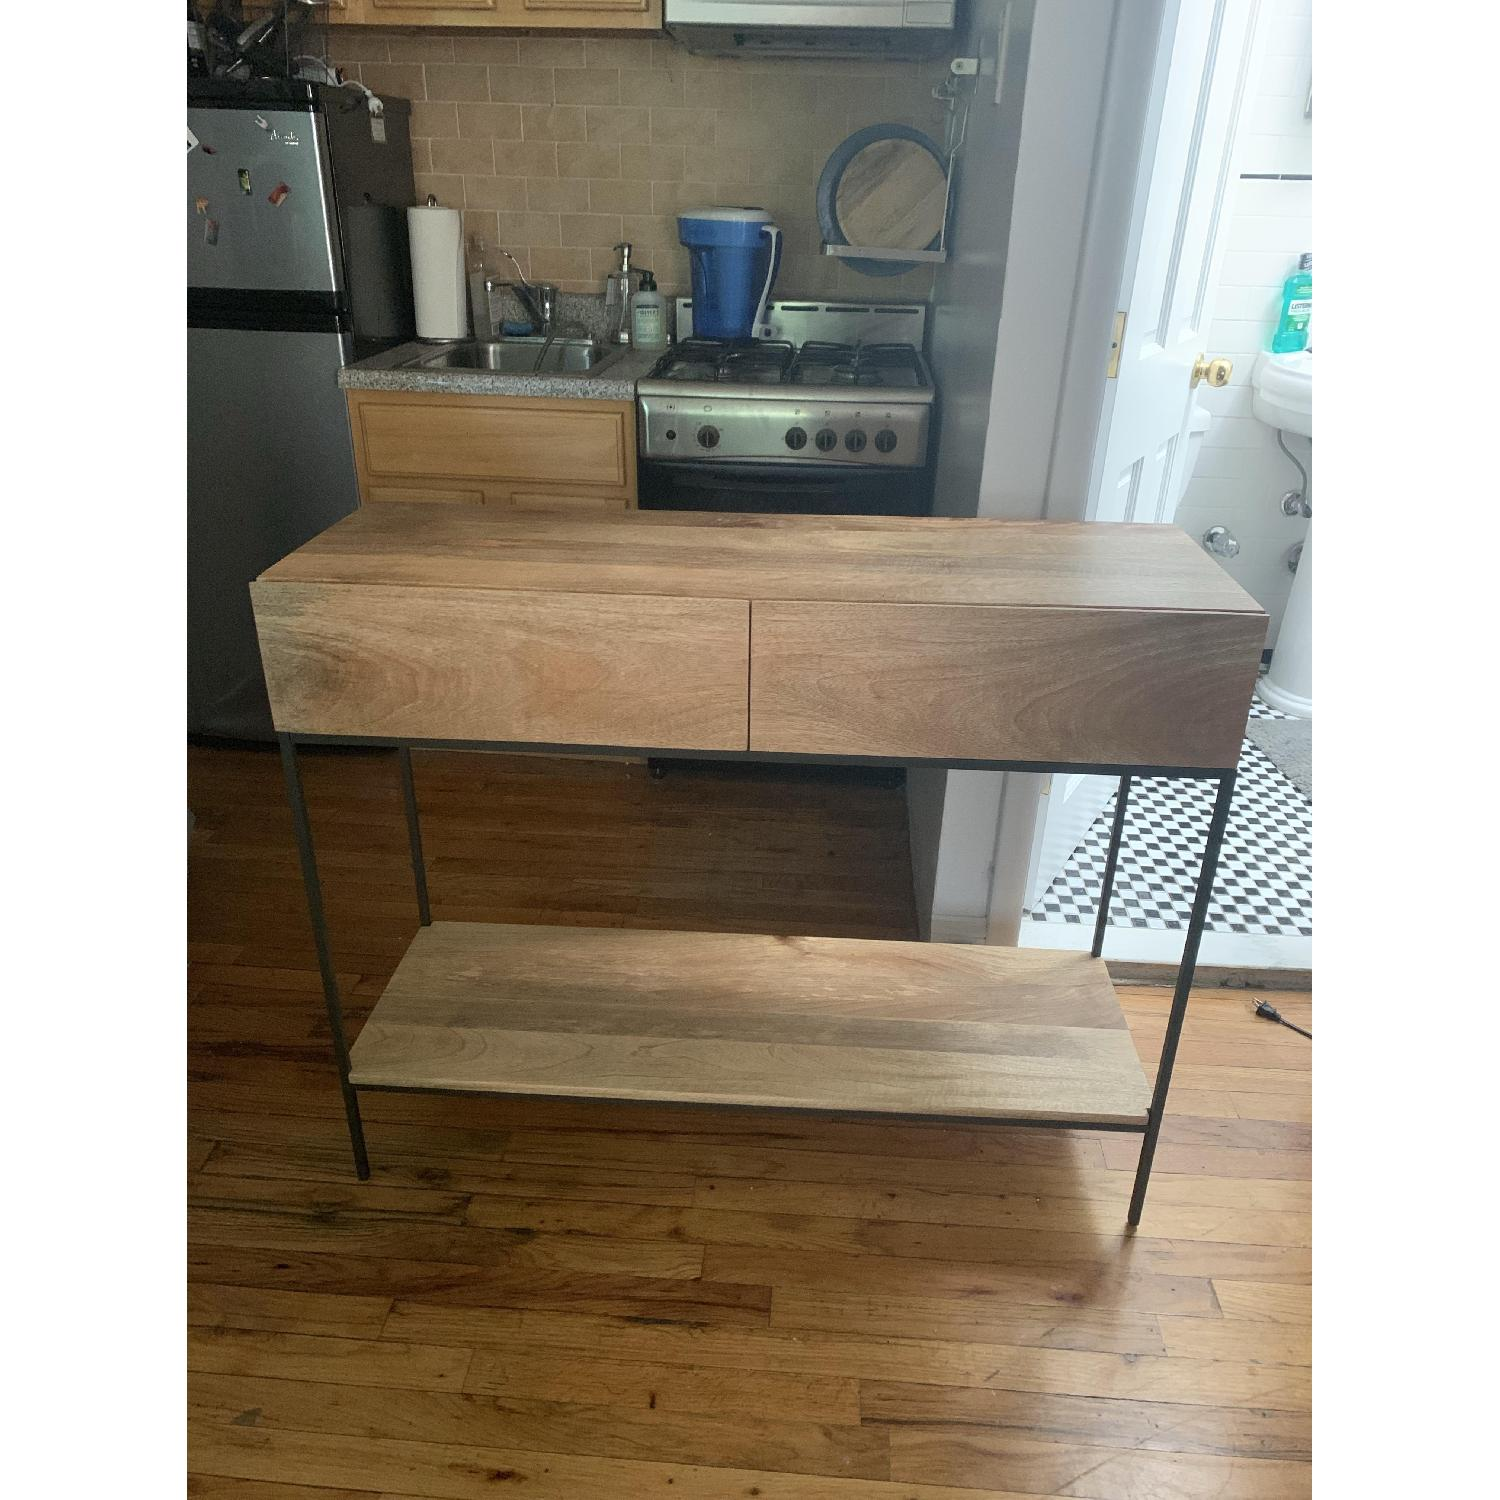 West Elm Modern Console Table in Natural Finish w/ Drawers - image-1